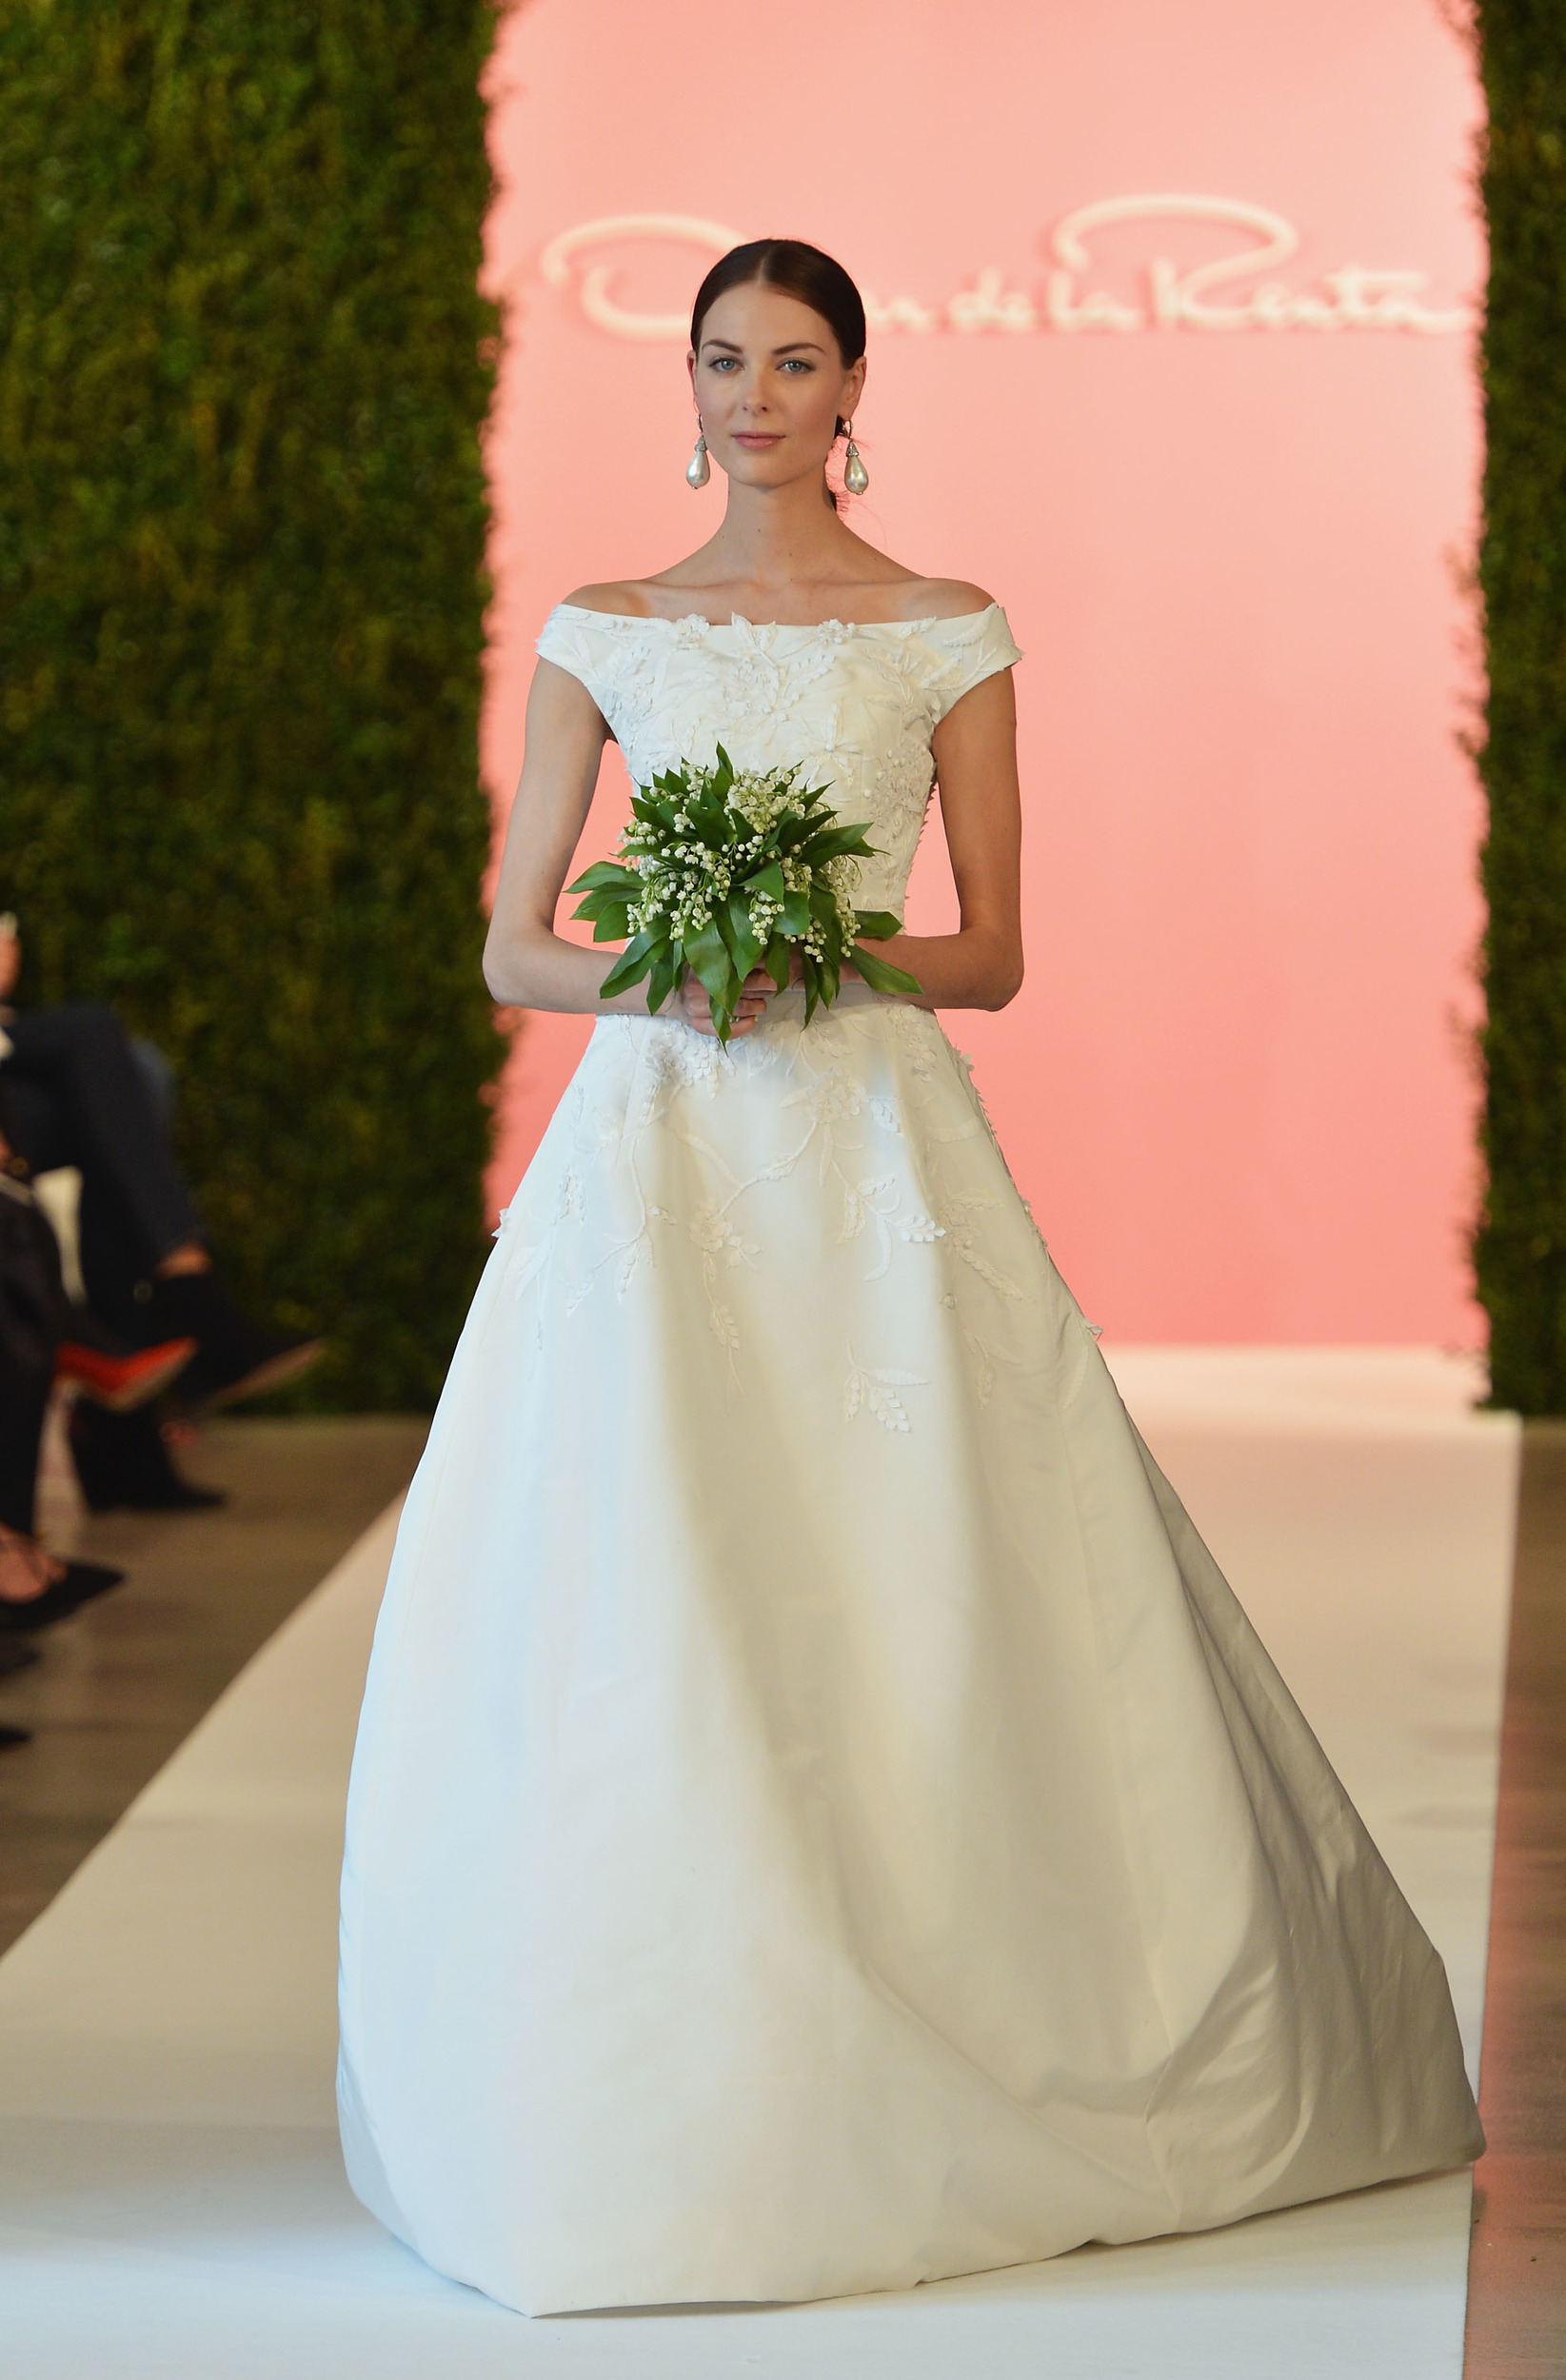 Oscar de la Renta's Most Iconic Moments - Posh Point